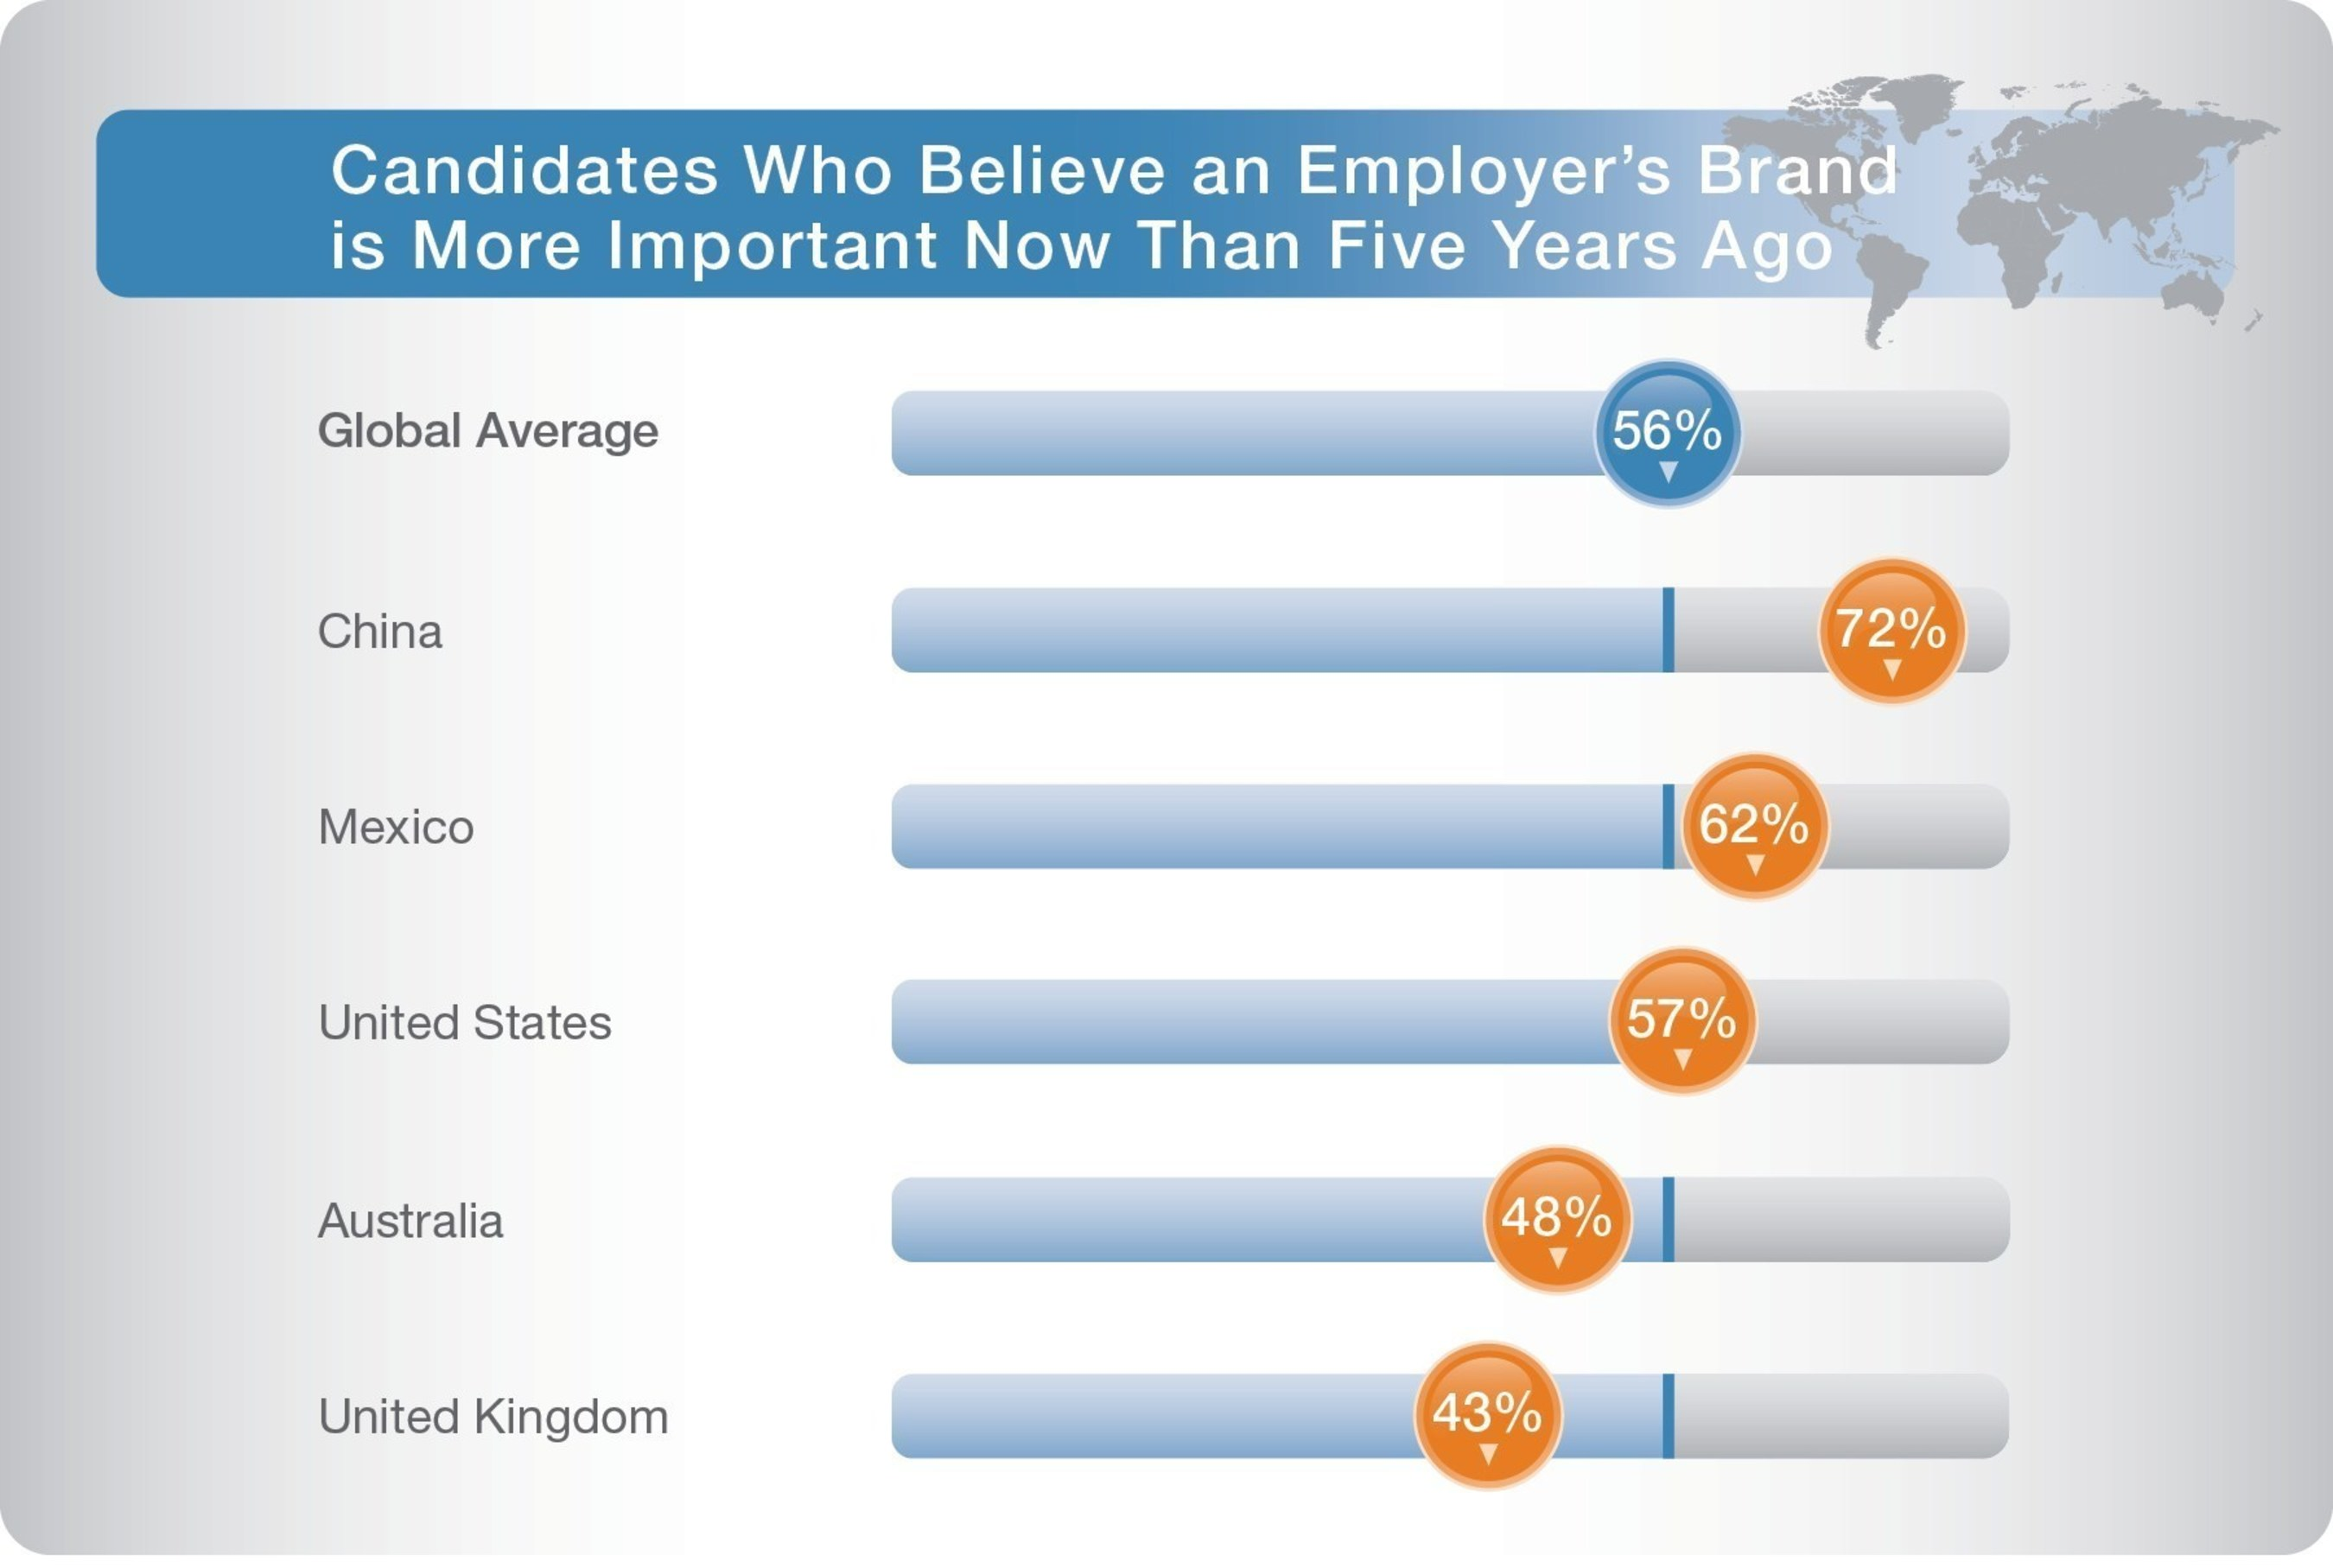 More than half of job seekers across the globe say an employer's brand is more important today than it was five years ago, according to new research from ManpowerGroup Solutions, the world's largest RPO provider. Learn more at www.manpowergroupsolutions.com/manpowergroup-solutions/candidatepreferences